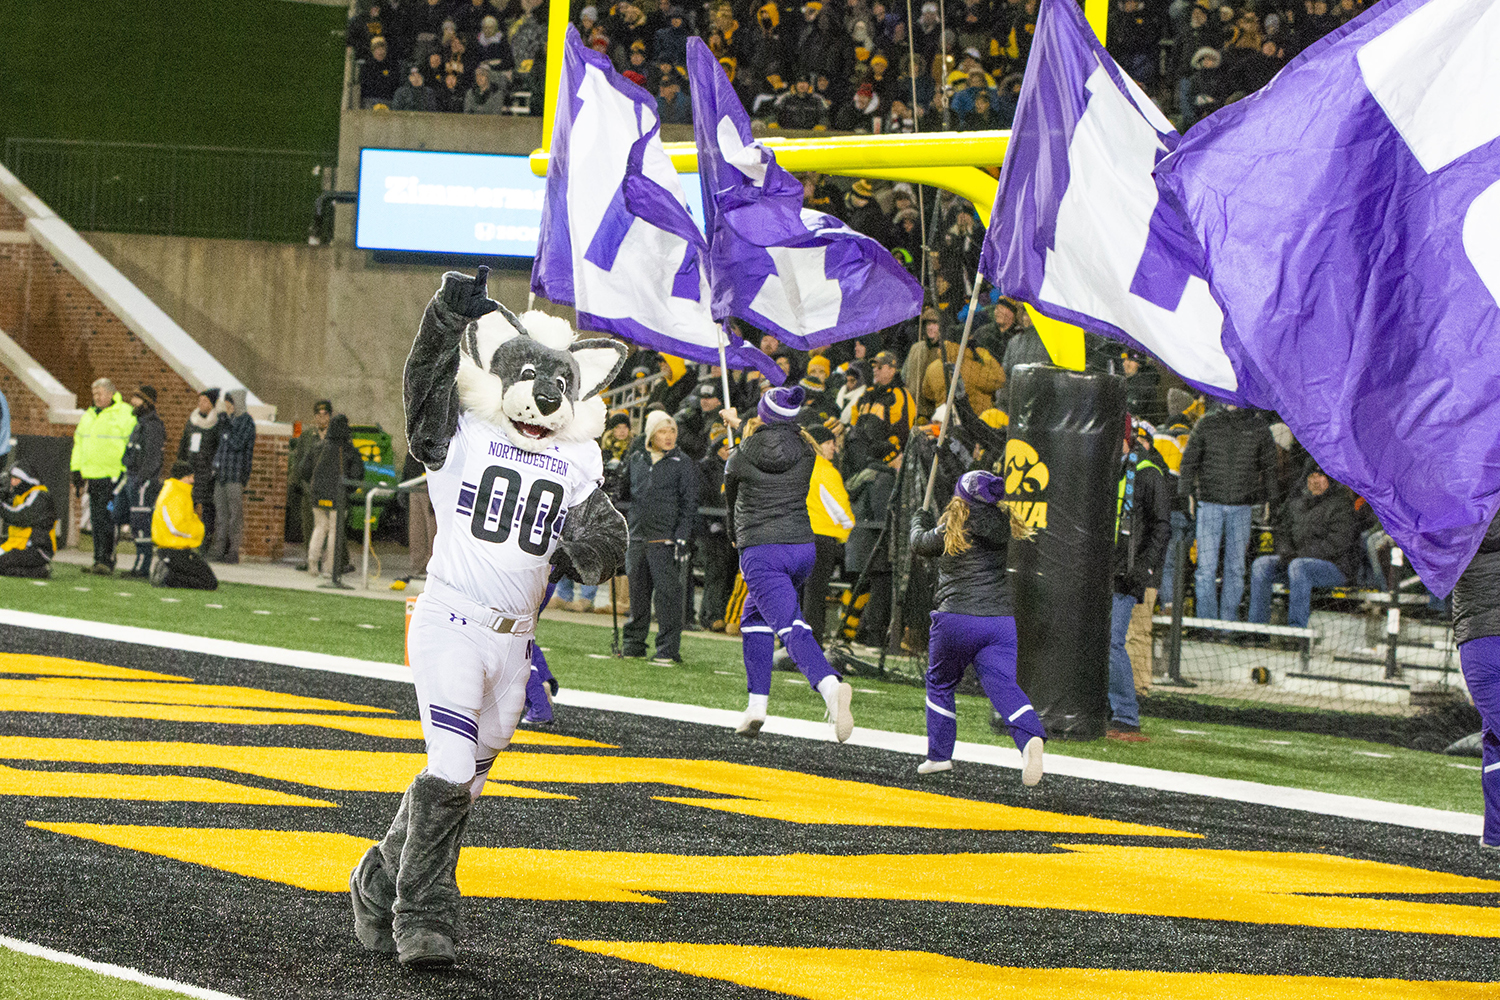 Willy the Wildcat cheers after a Northwestern touchdown during the Iowa/Northwestern game at Kinnick Stadium on Saturday, November 10, 2018. The Wildcats defeated the Hawkeyes 14-10. (Katina Zentz/The Daily Iowan)